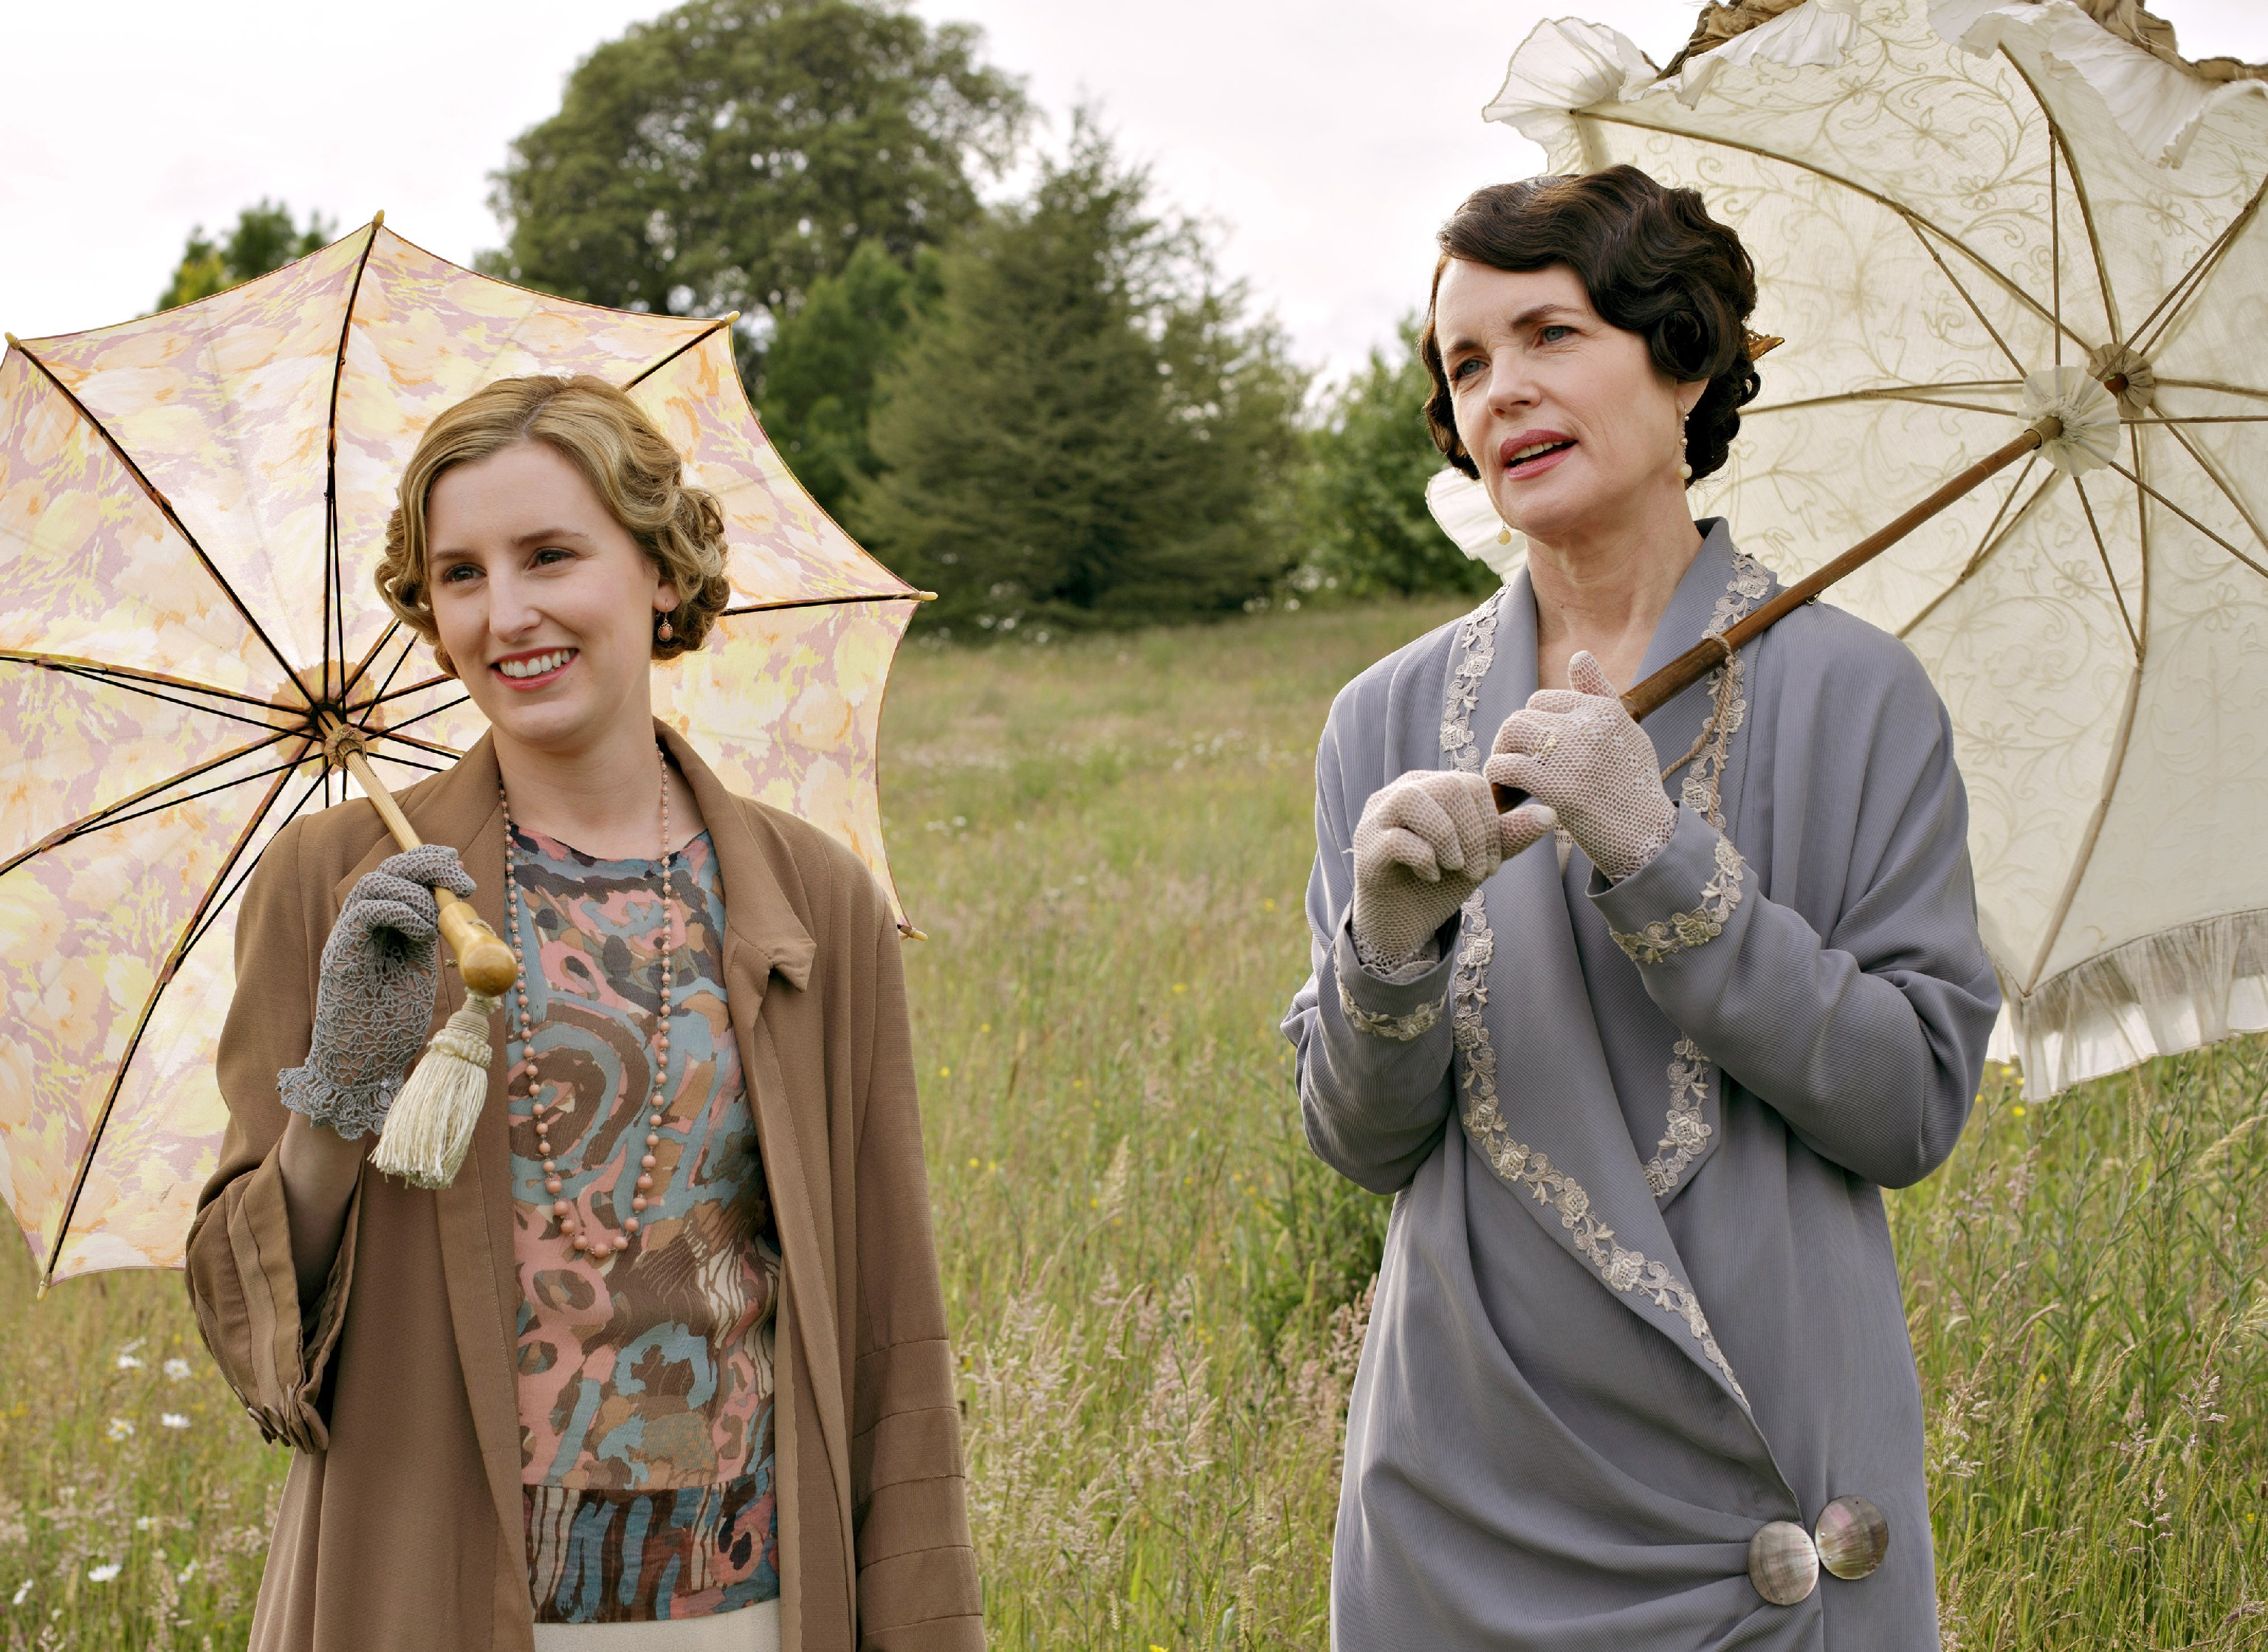 downton_abbey_s6_cora_edith.jpg